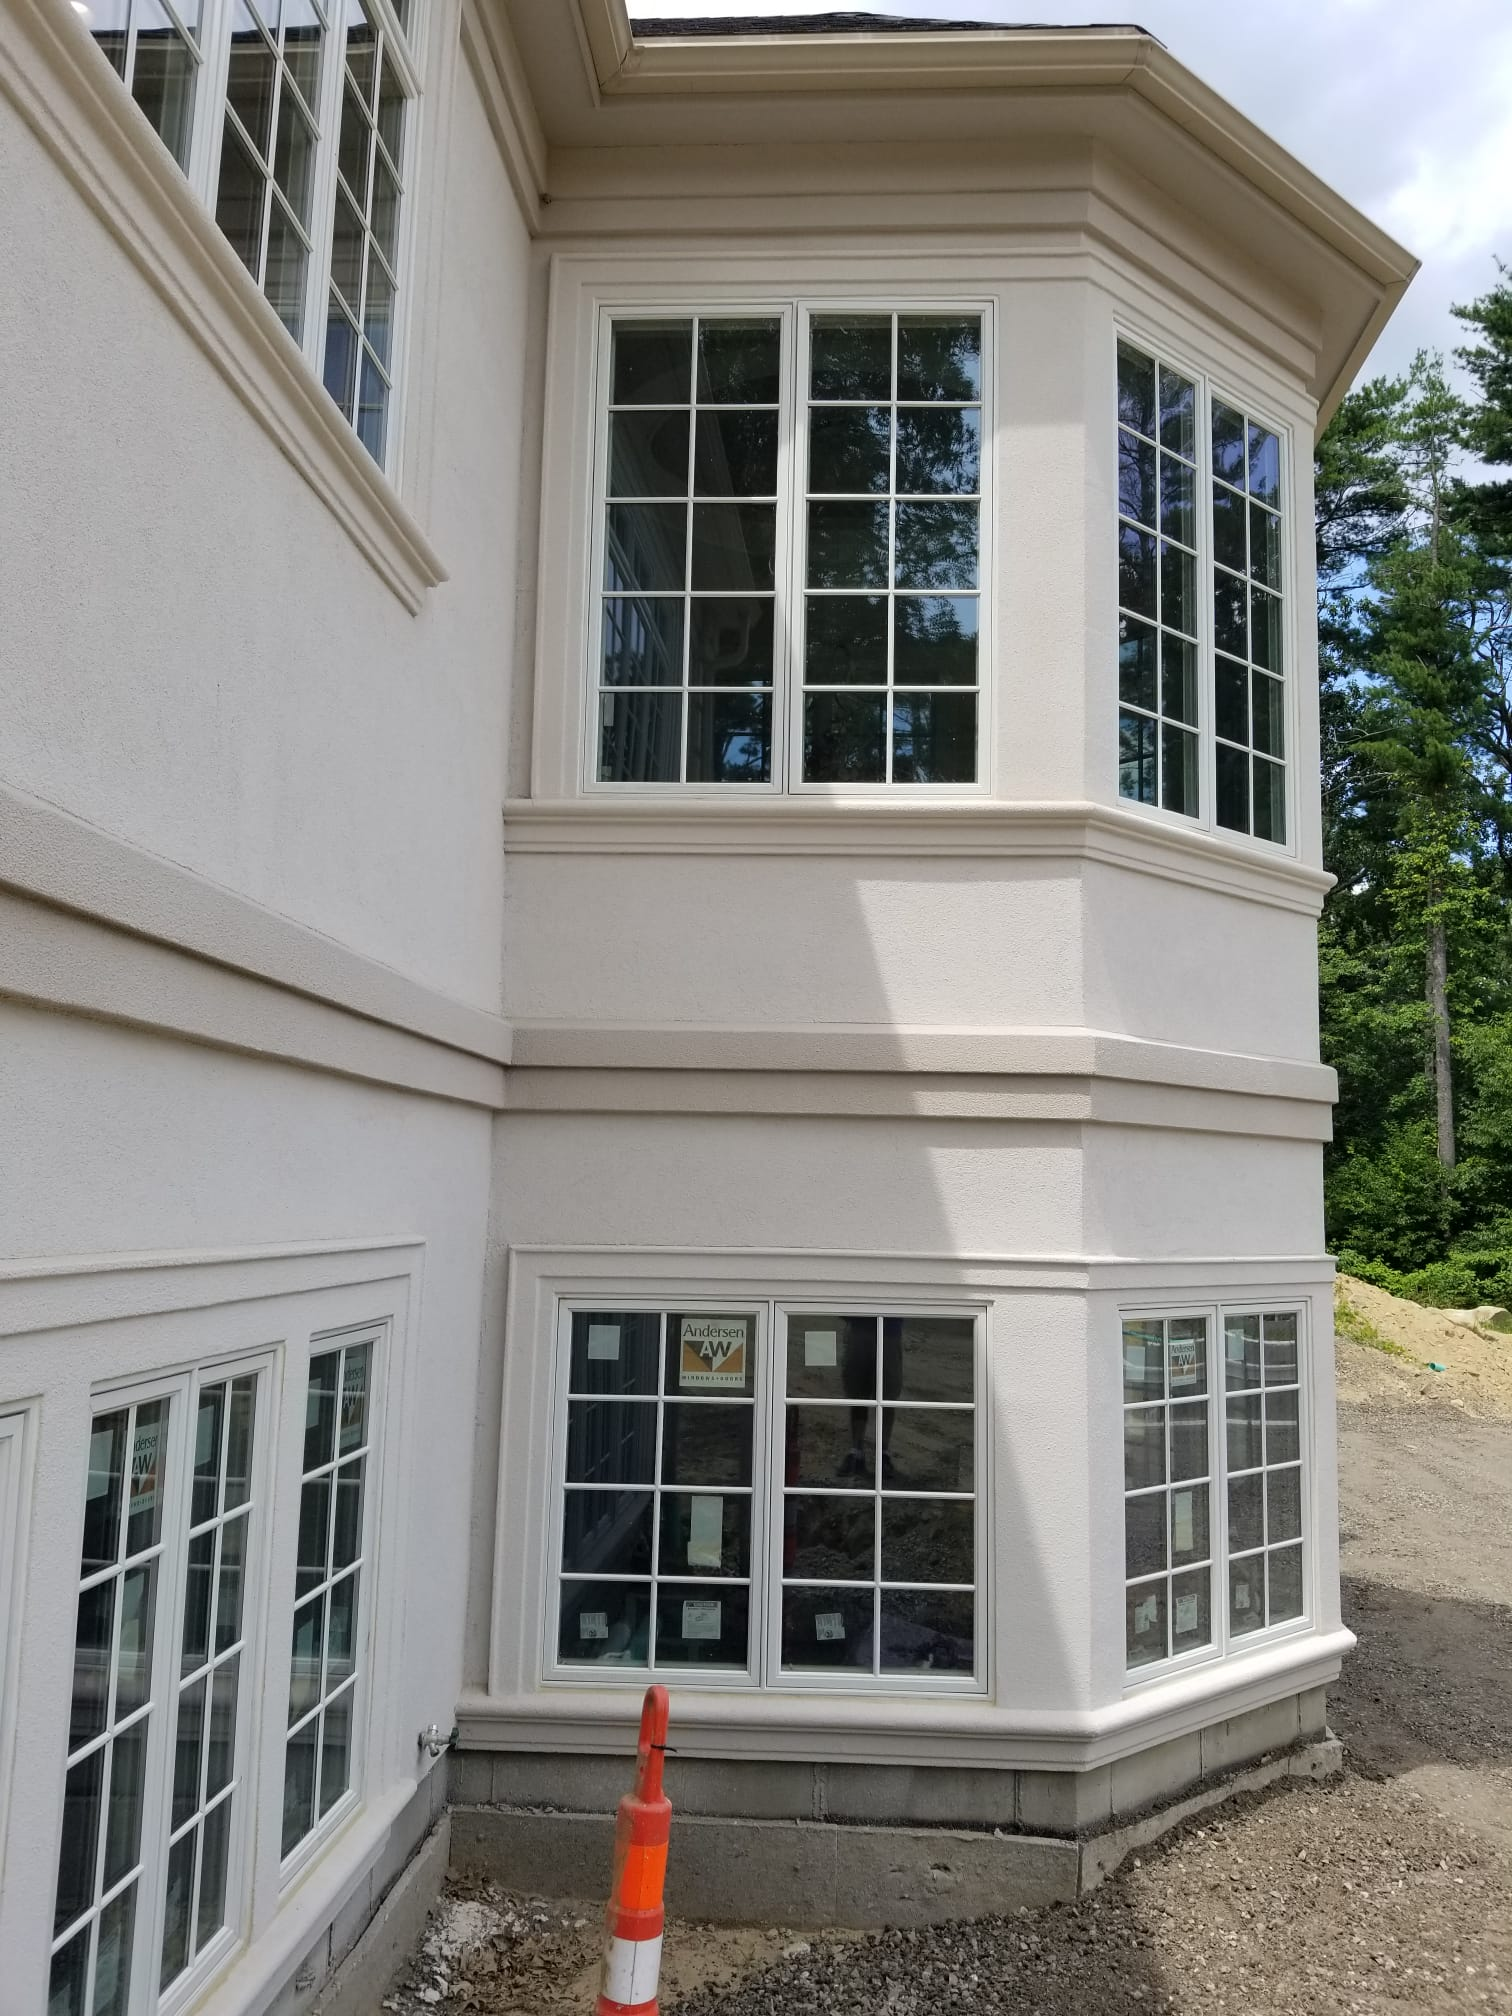 Topline construction, stucco, e.i.f.s, cleaning and restoration building, commercial or residential.